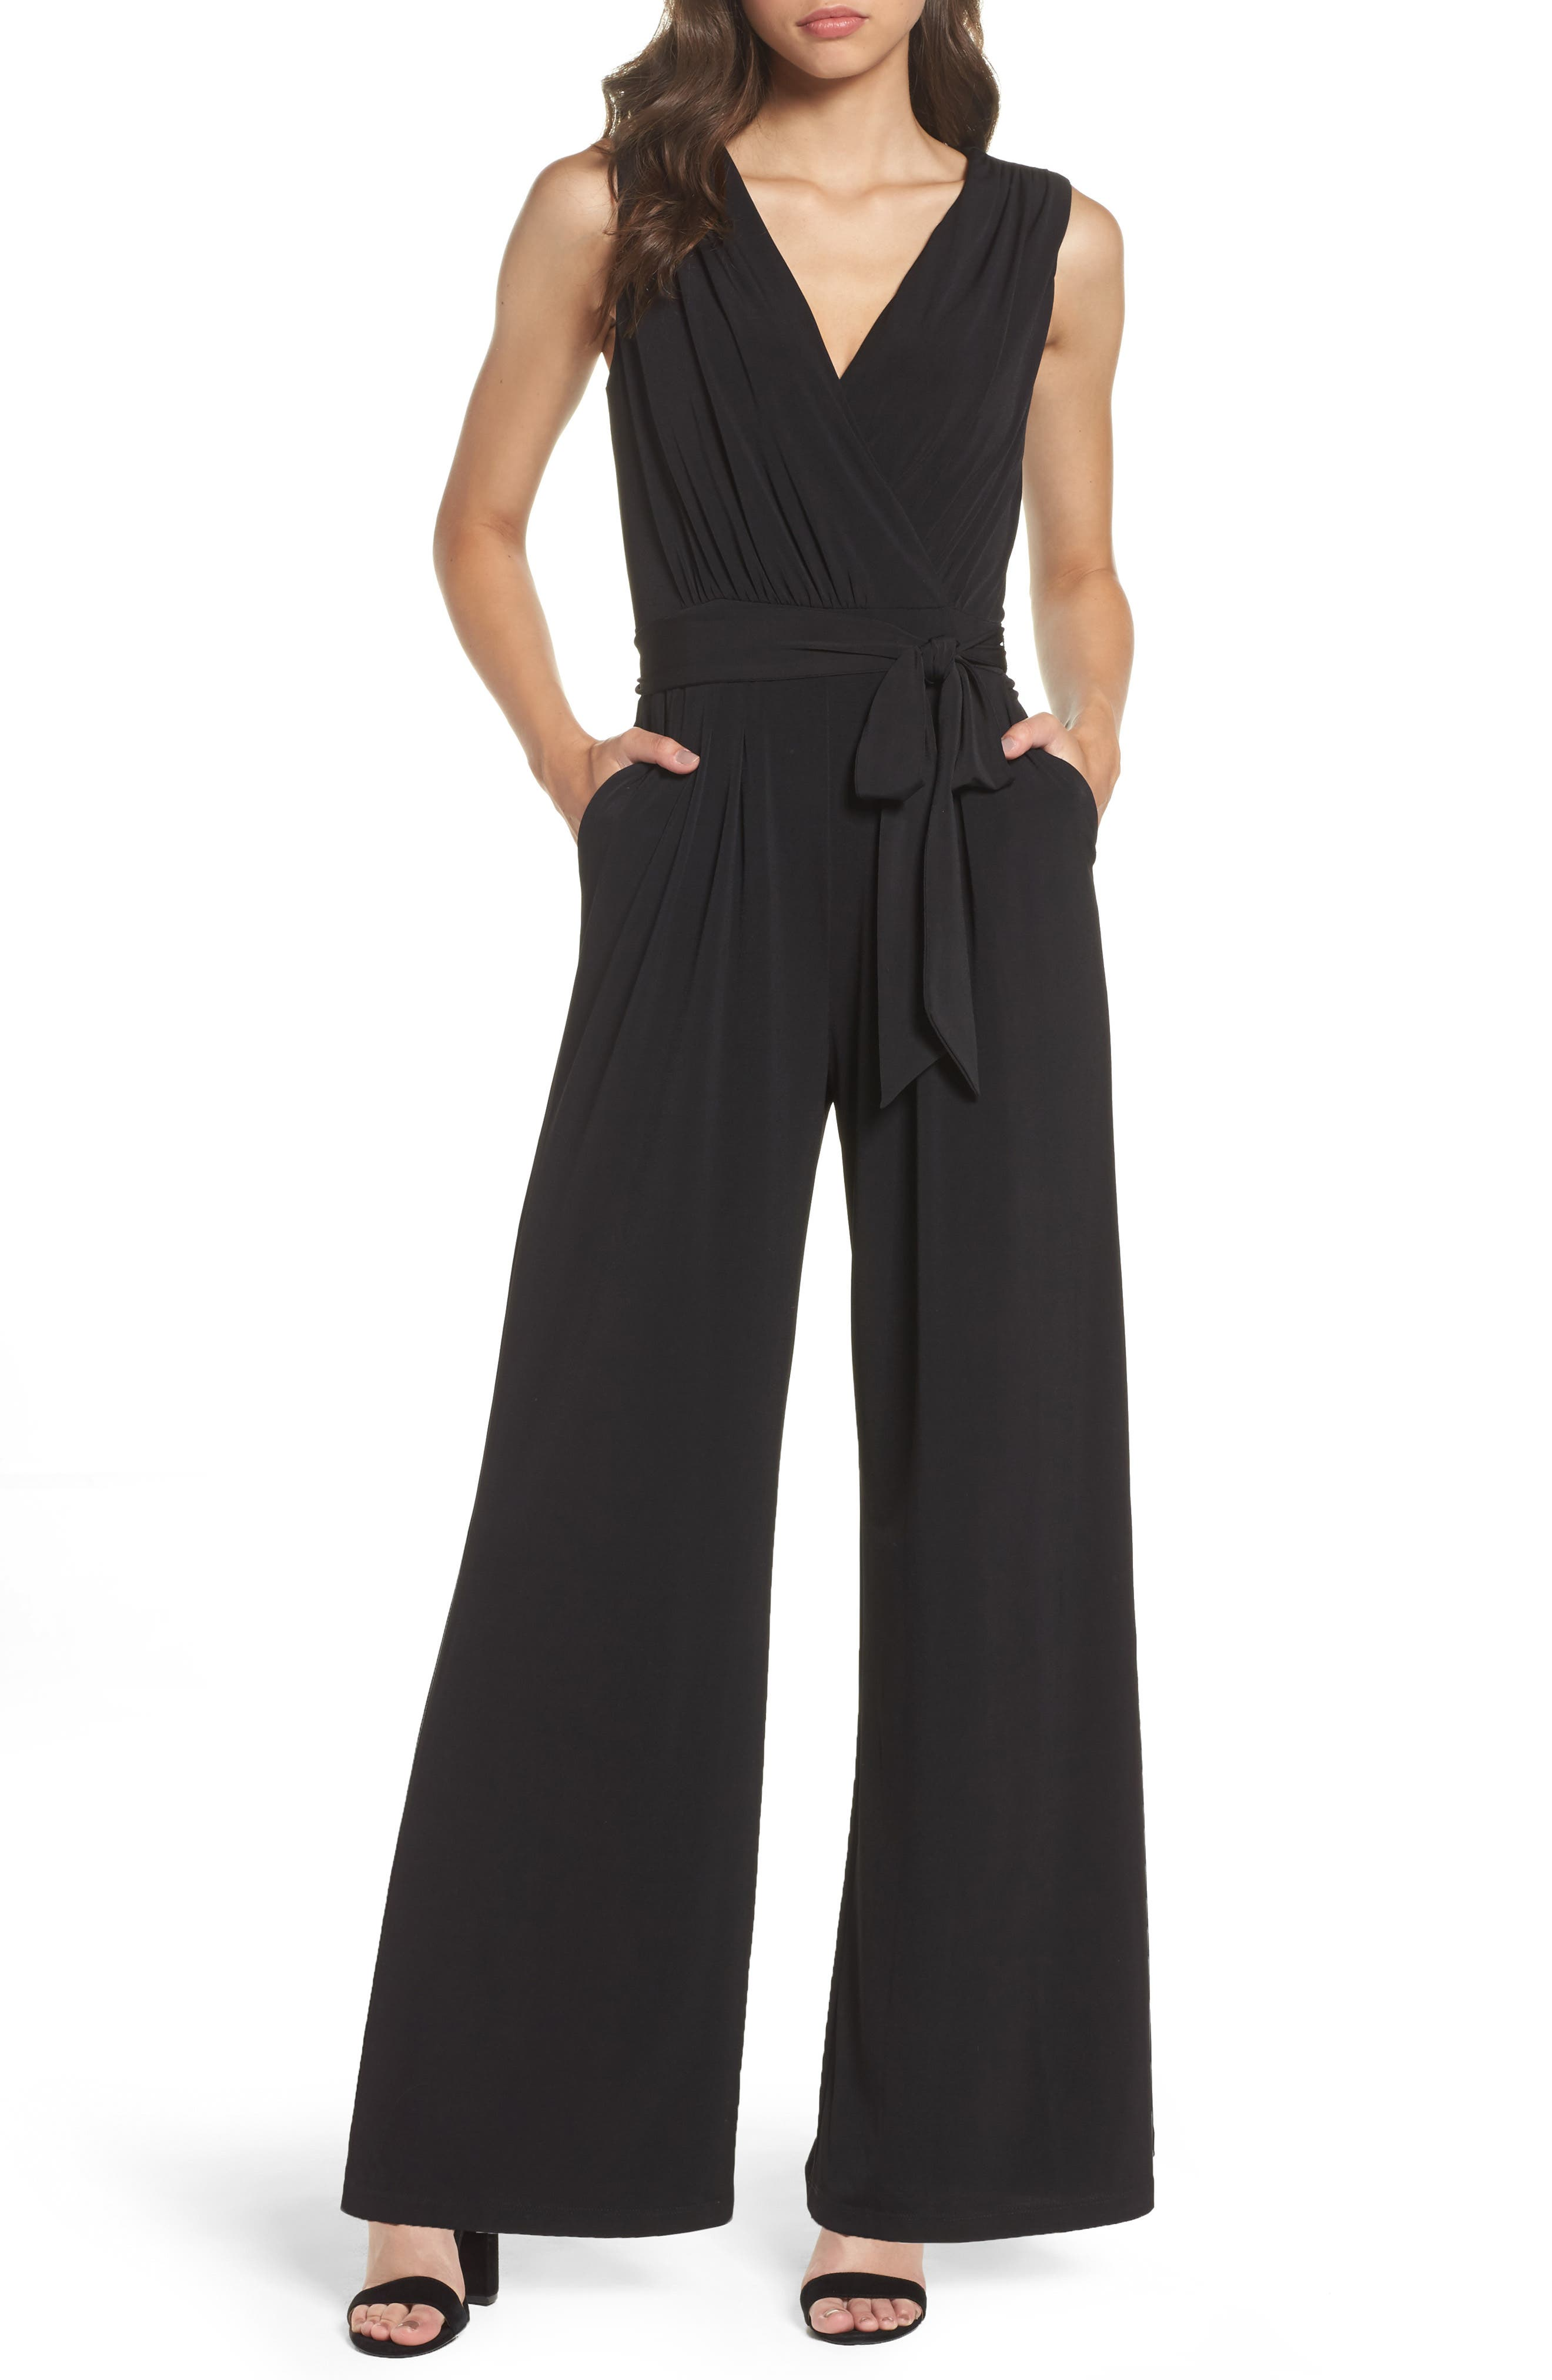 Alternate Image 1 Selected - Vince Camuto Faux Wrap Jersey Jumpsuit (Regular & Petite)